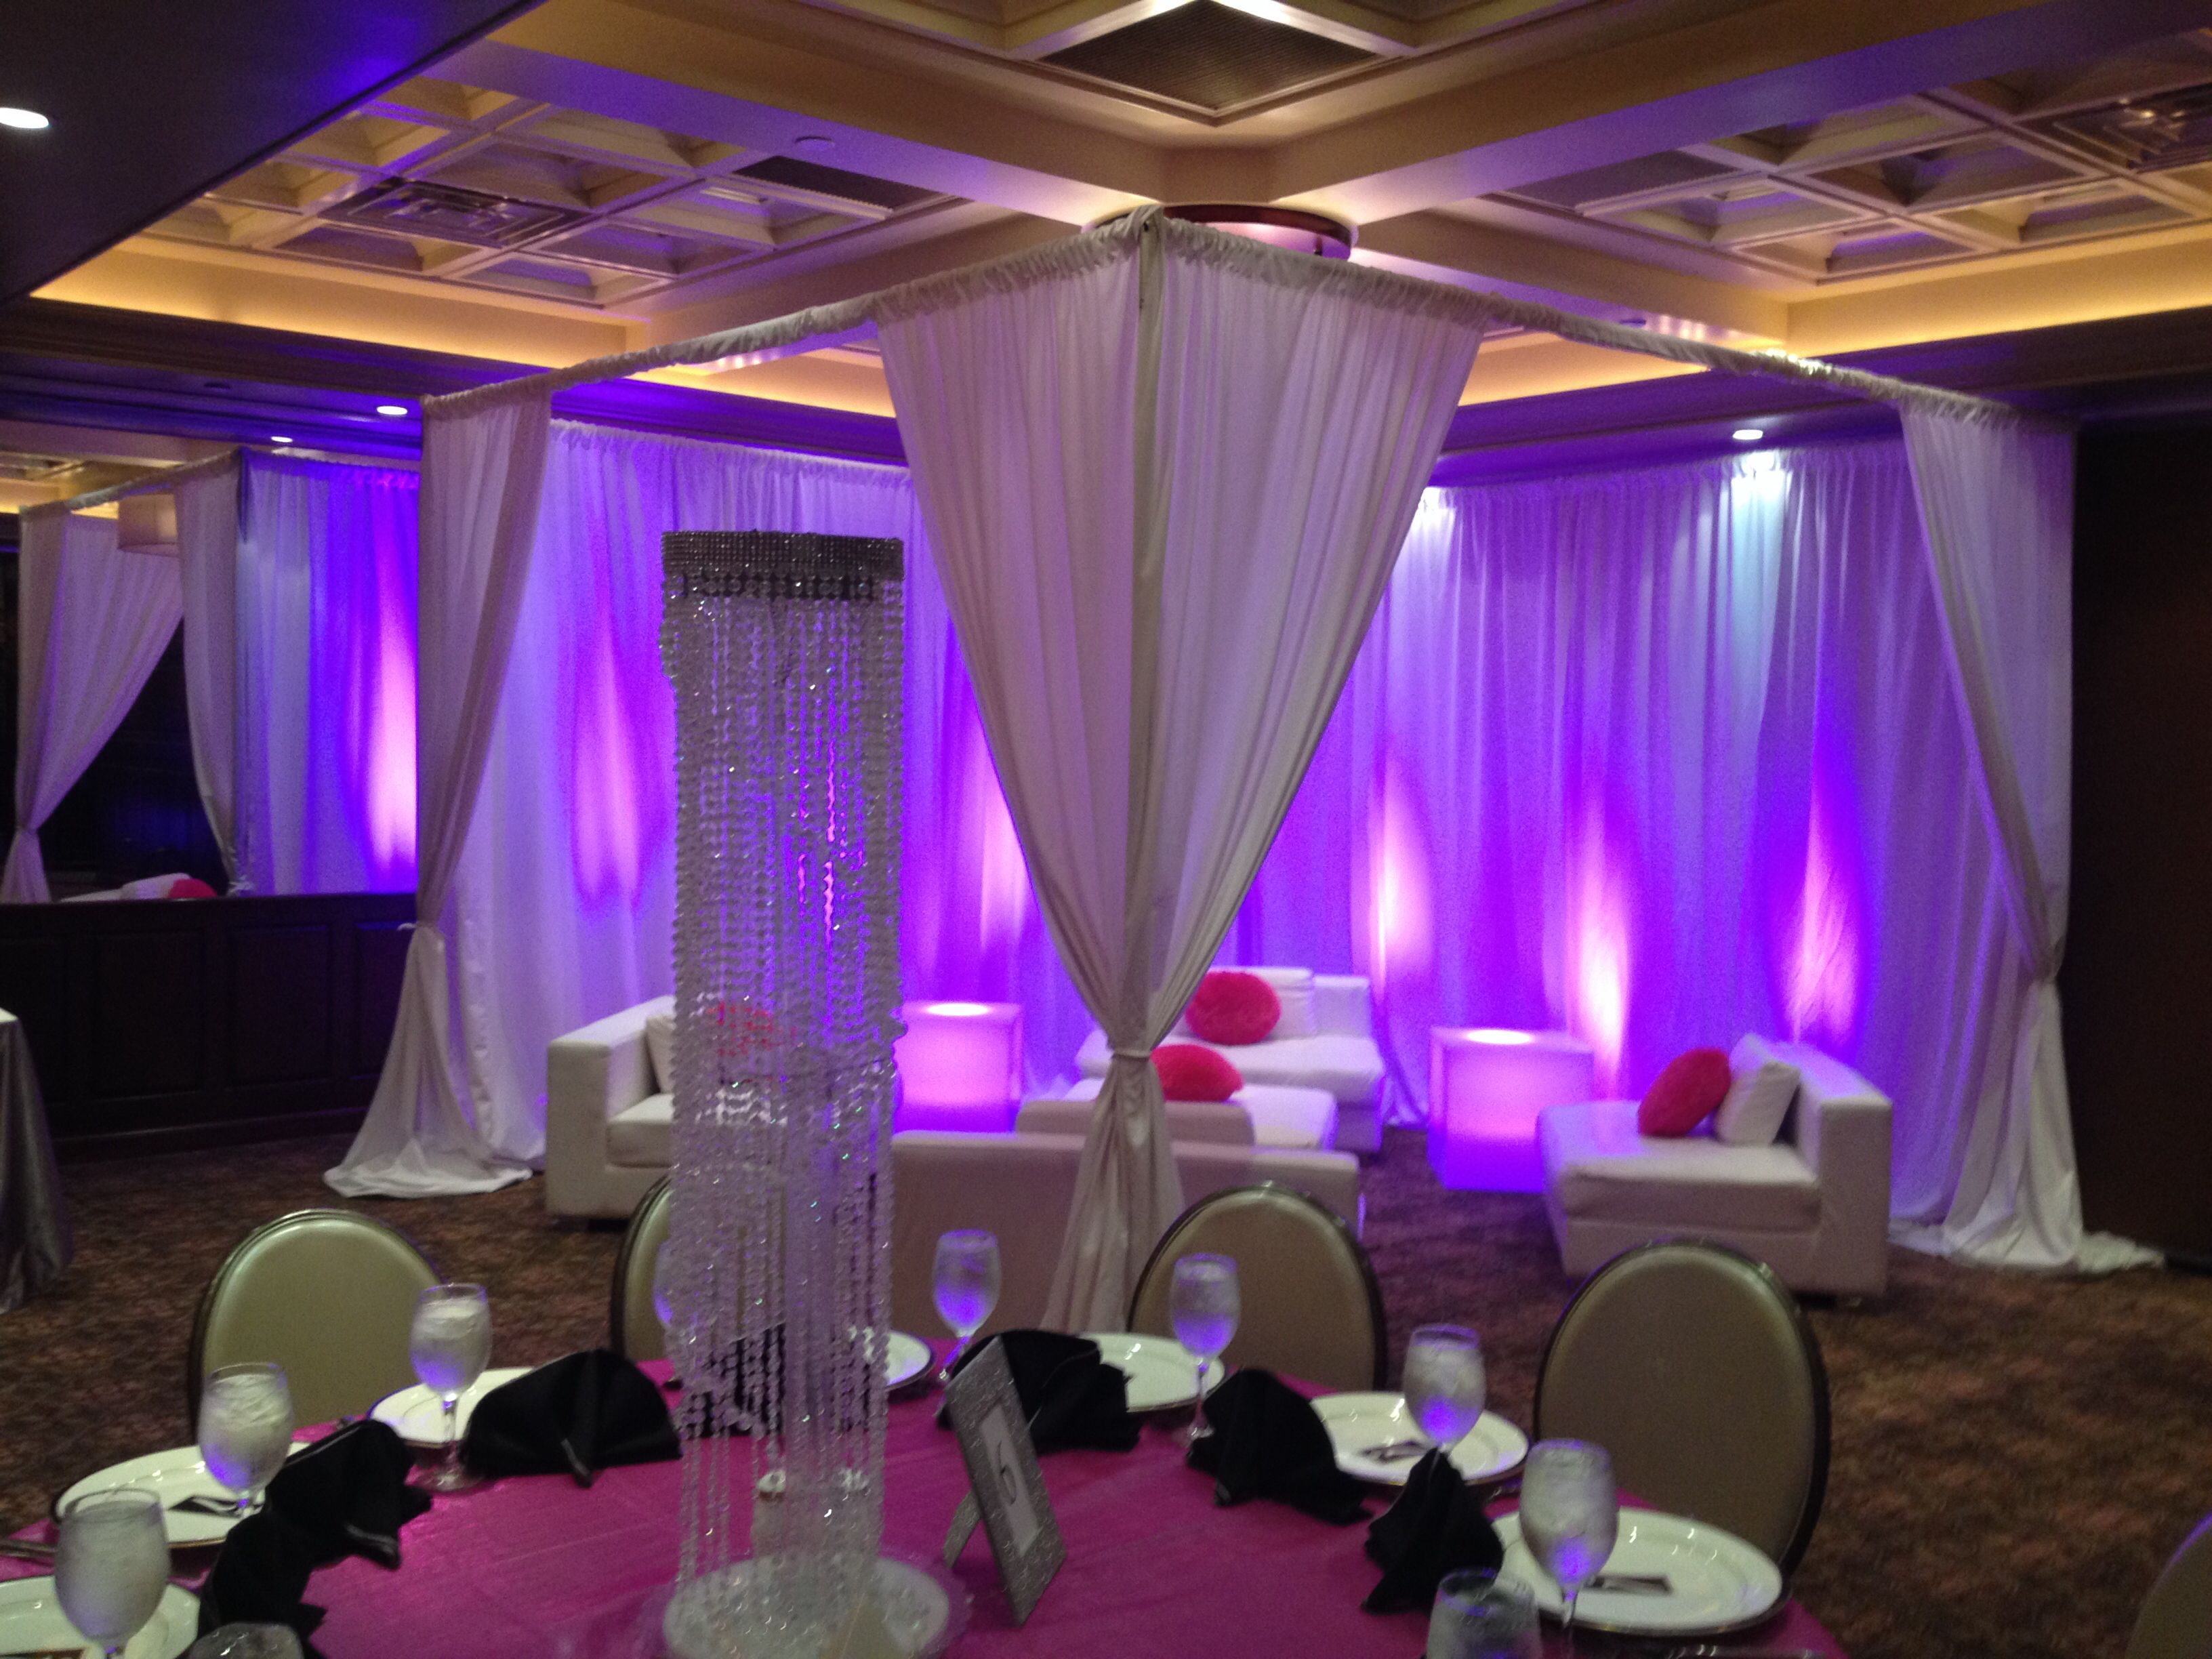 Party Rooms For Rent In Boca Raton Fl